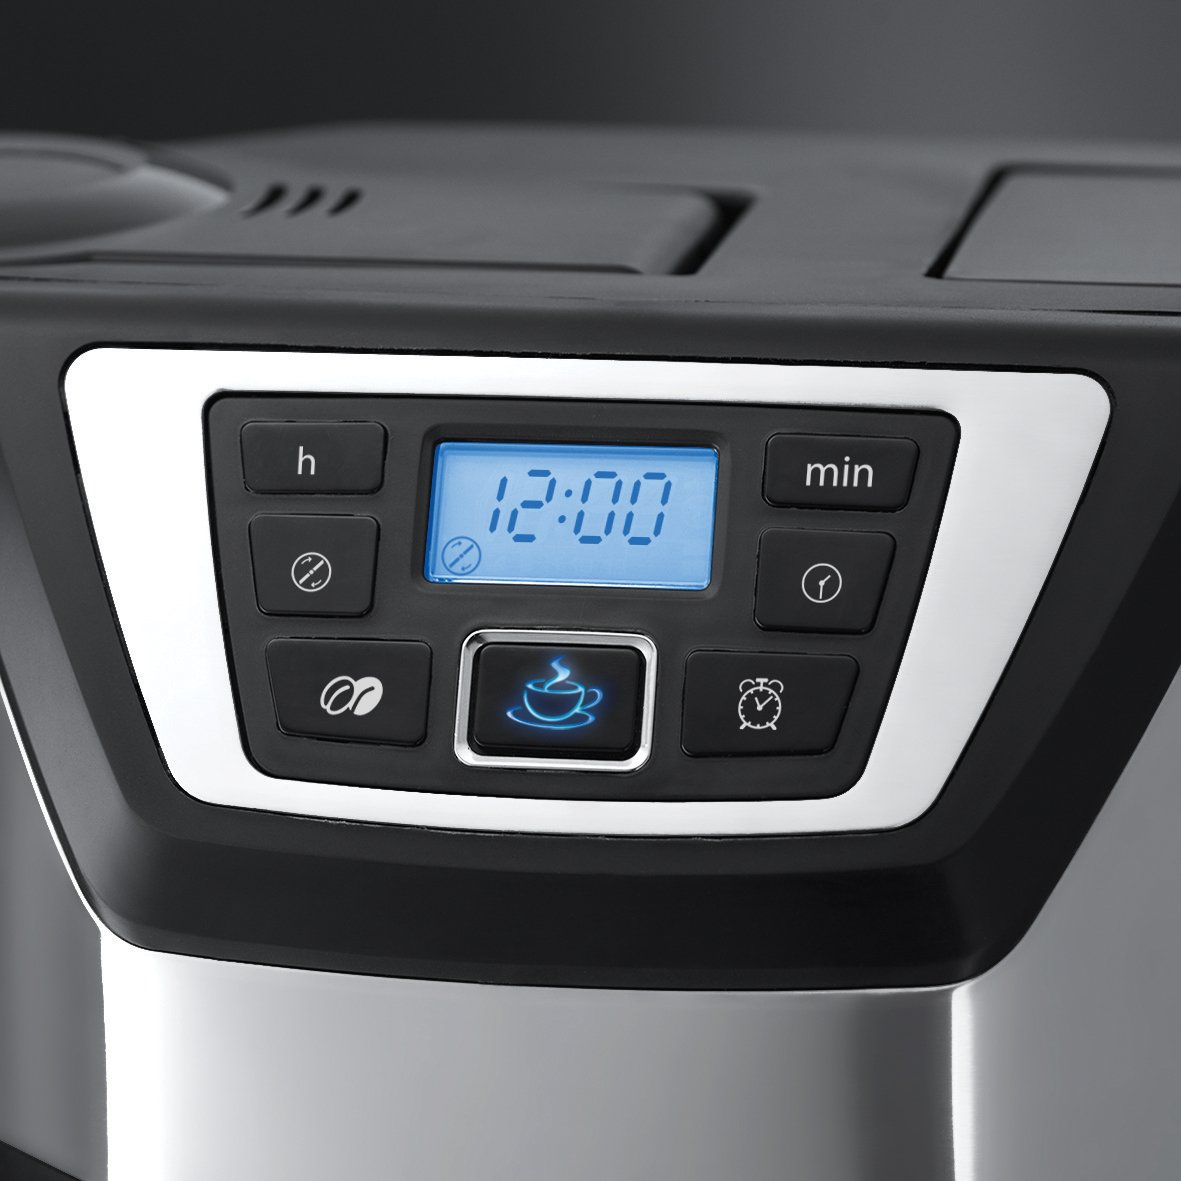 Russell Hobbs Chester Grind & Brew Coffee Maker – Black 3